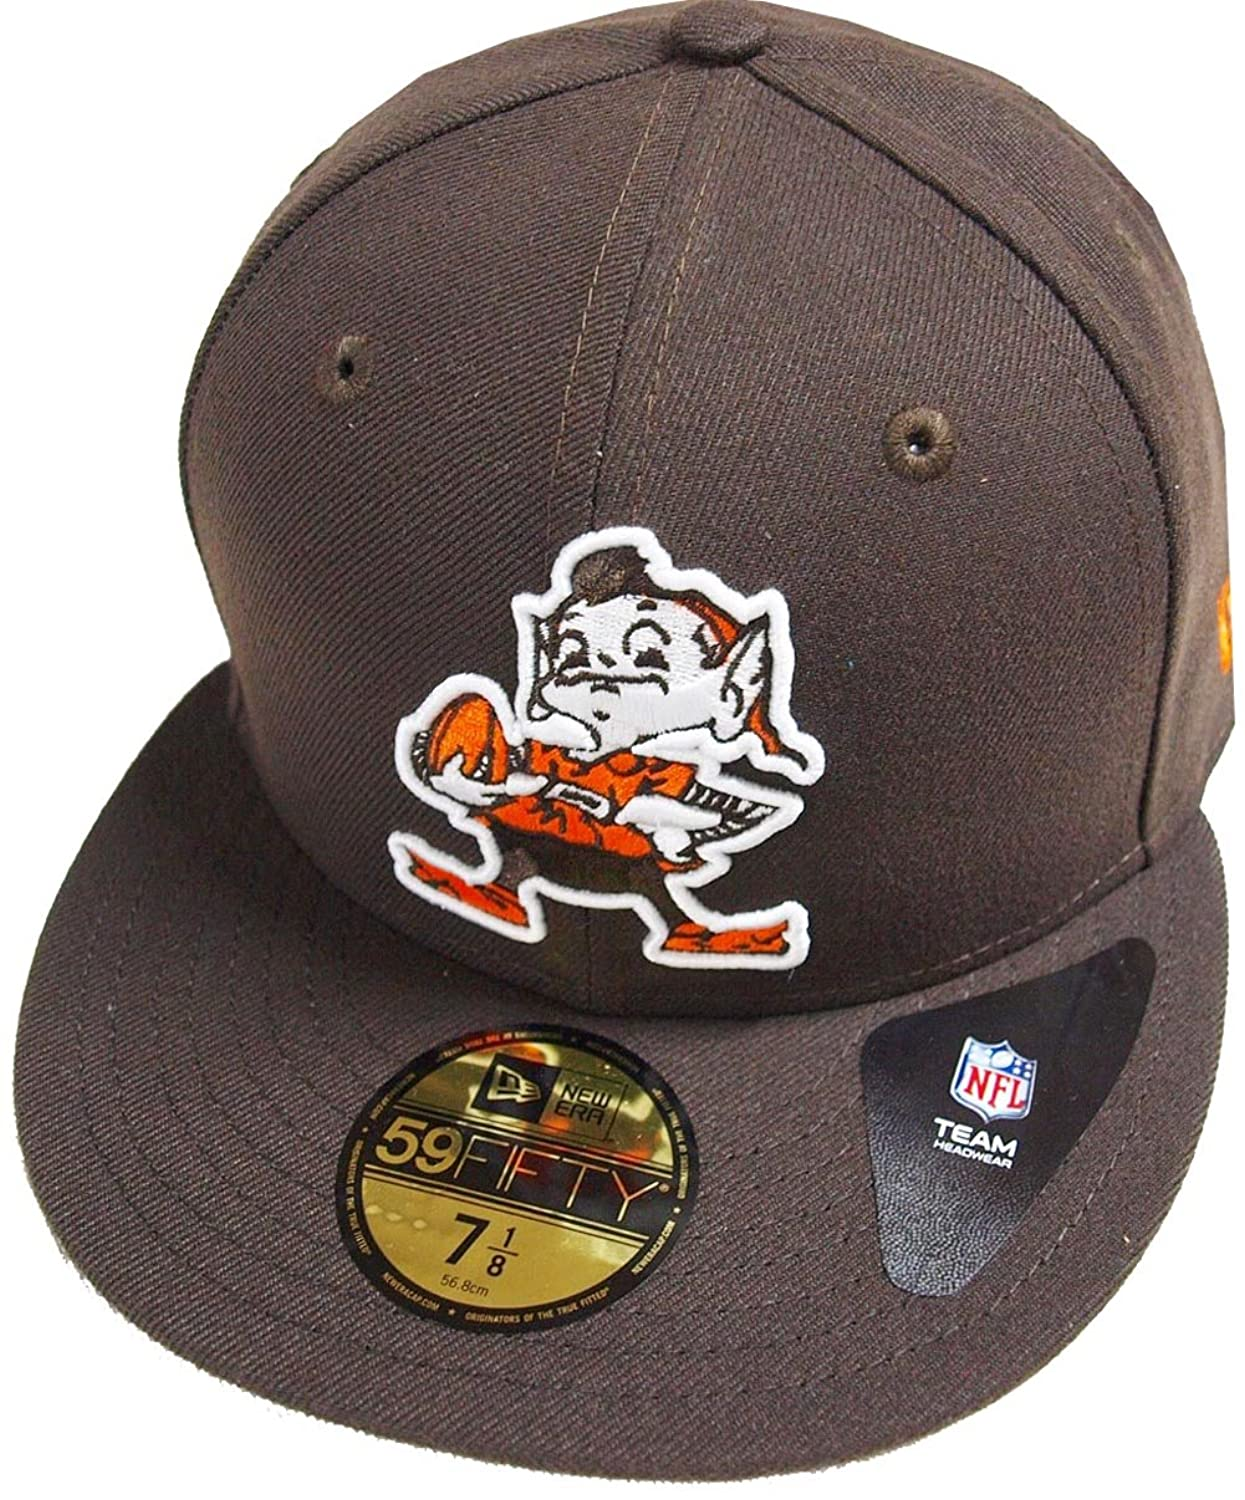 A NEW ERA Cleveland Browns CC Logo NFL Cap 59fifty 5950 Fitted Basecap Kappe Men Special Limited Edition